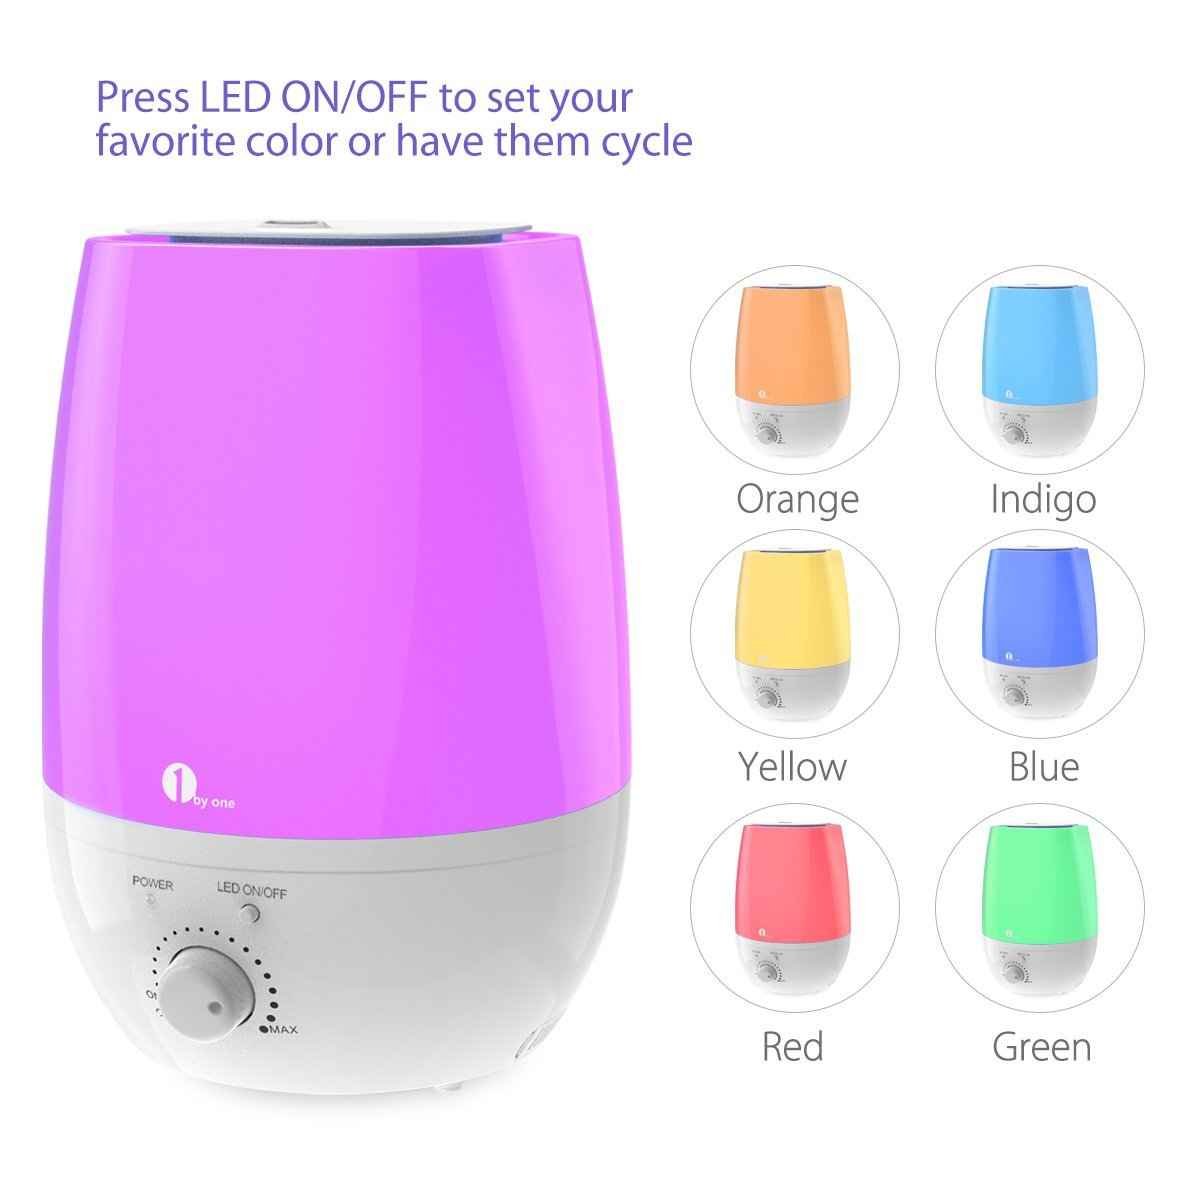 1byone Cool Mist Humidifier